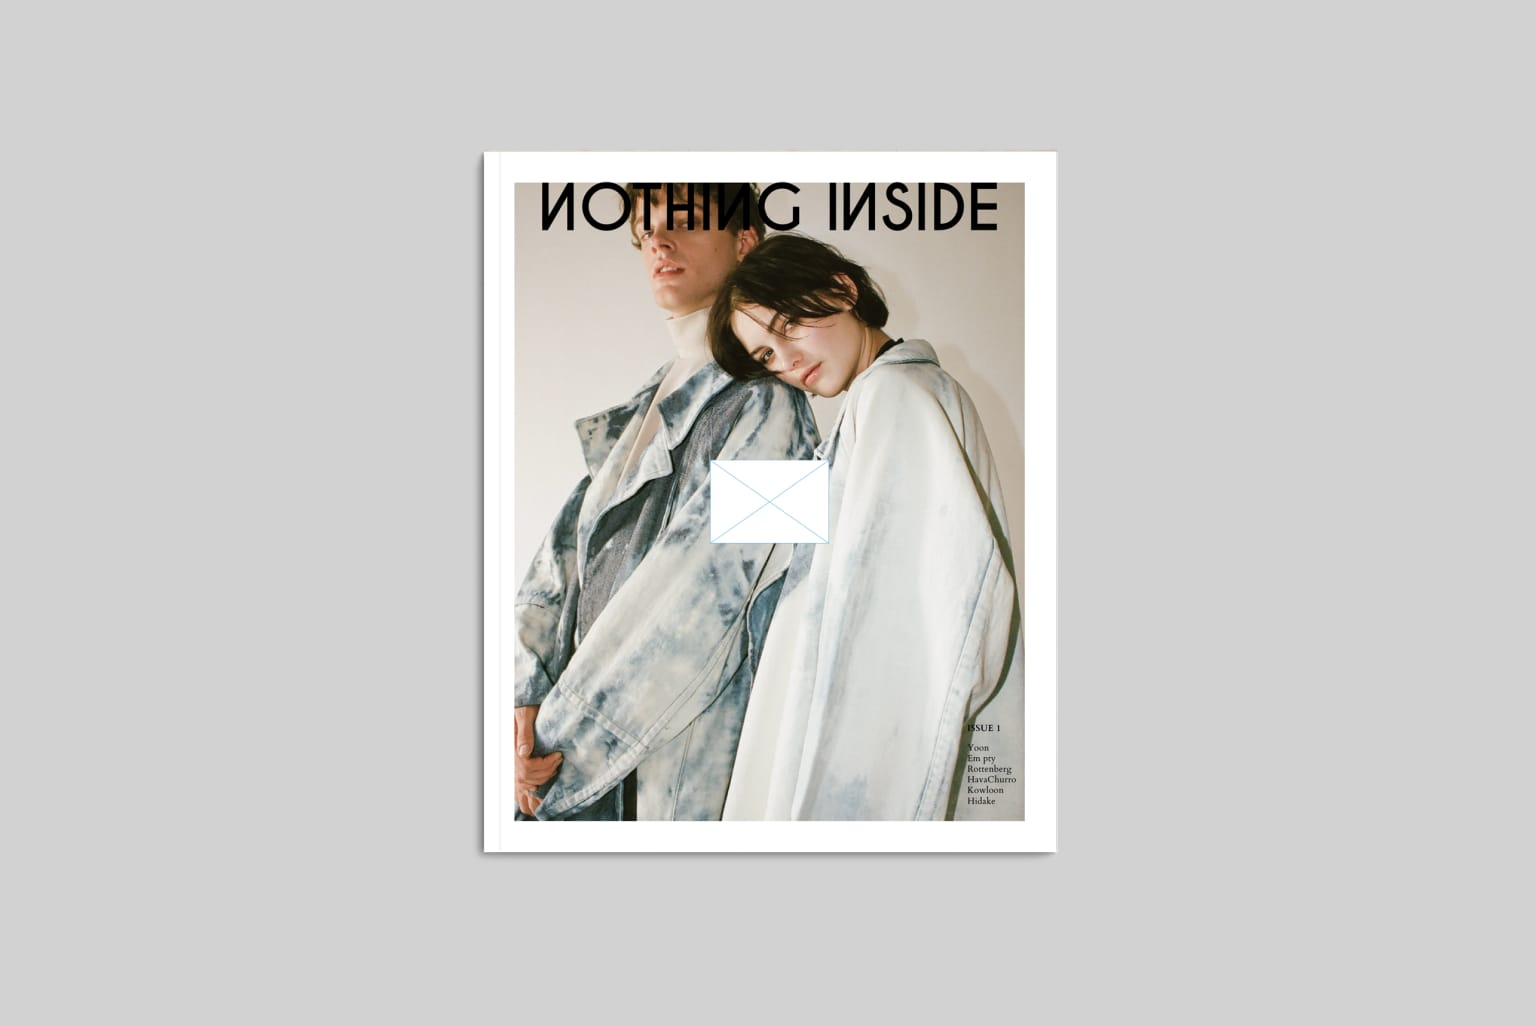 Nothing Inside #EditorialDesign